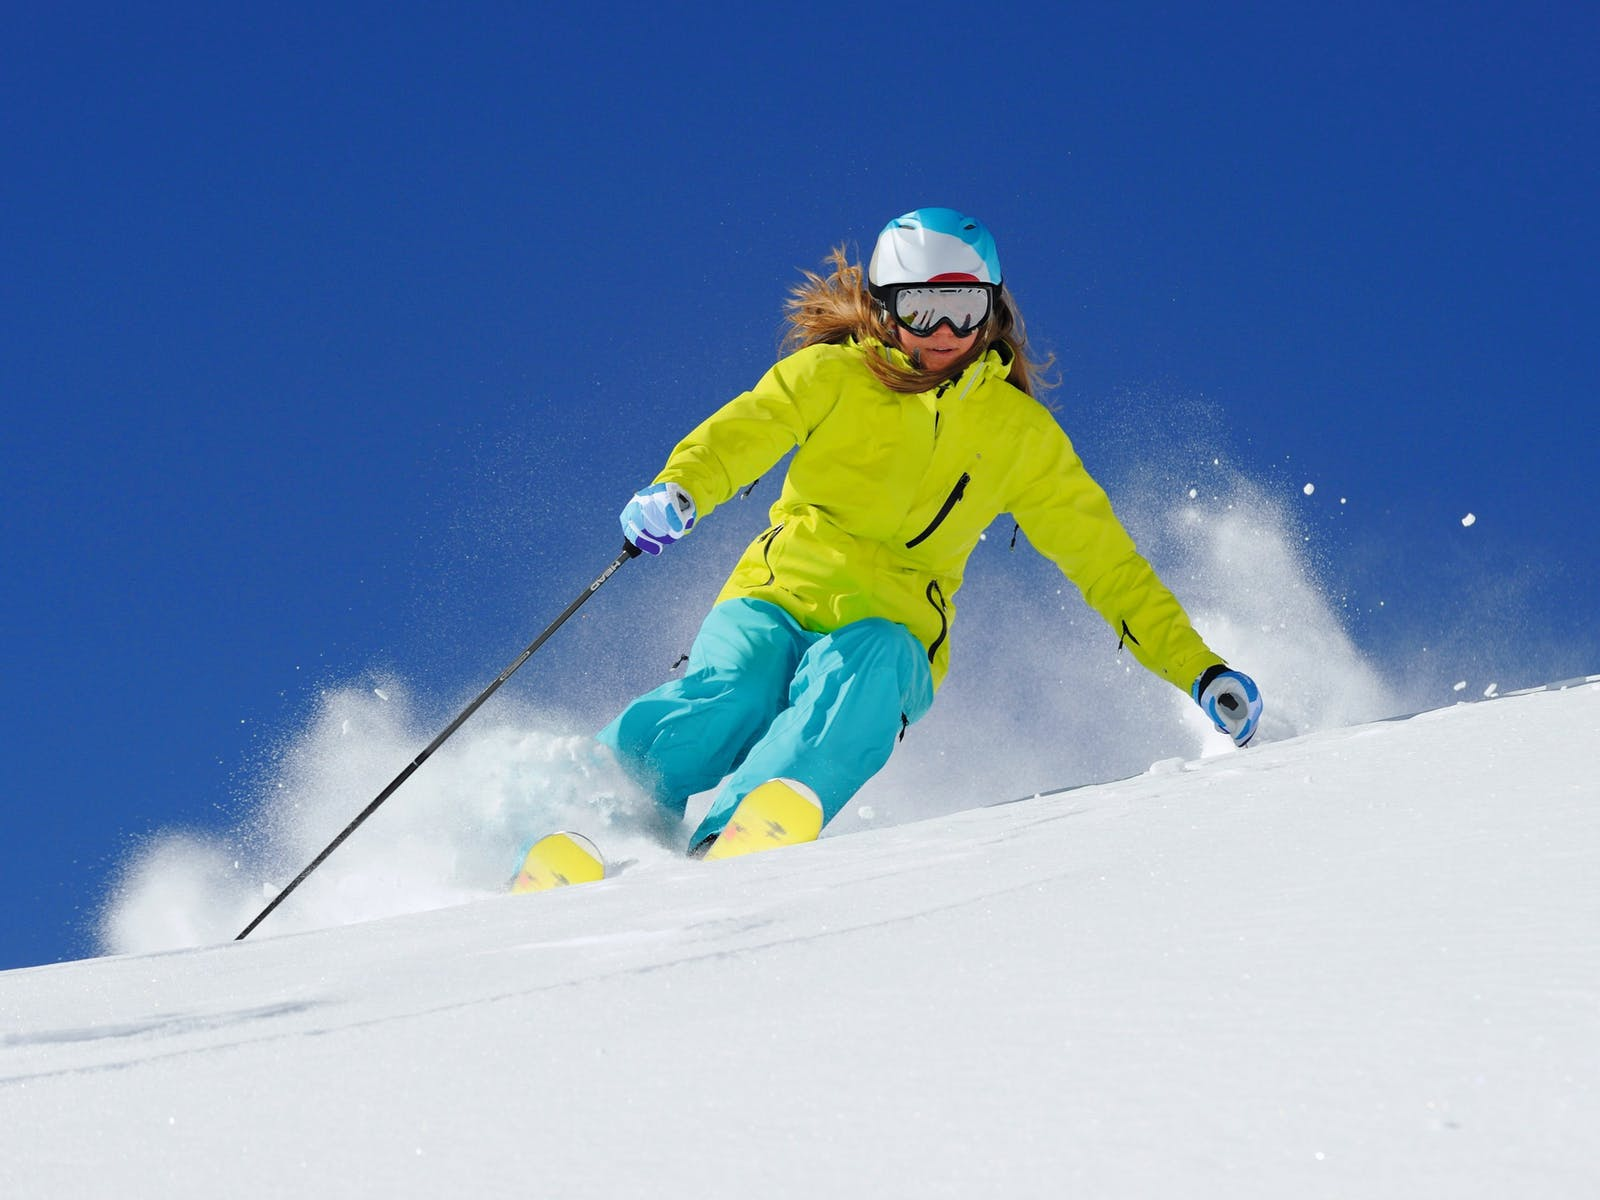 Ski Rentals - Season The Deer Valley Rental Shop offers a full line of high-quality Rossignol equipment designed in the latest ski technology and tuned by certified technicians.